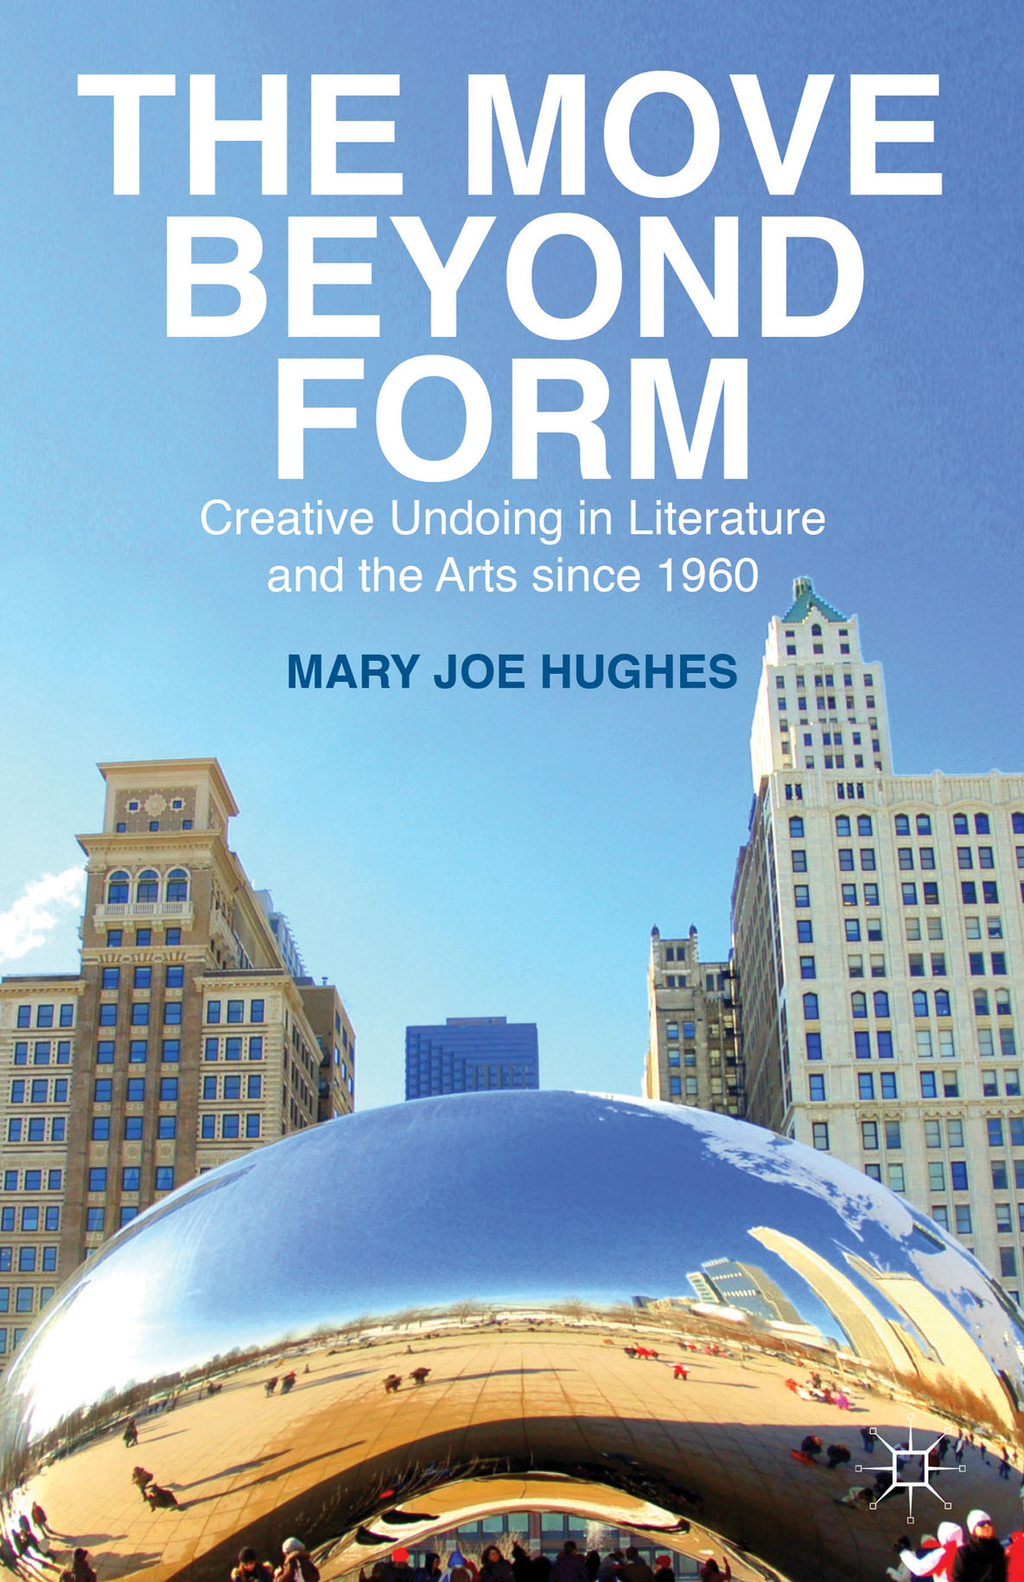 The Move Beyond Form Creative Undoing in Literature and the Arts since 1960